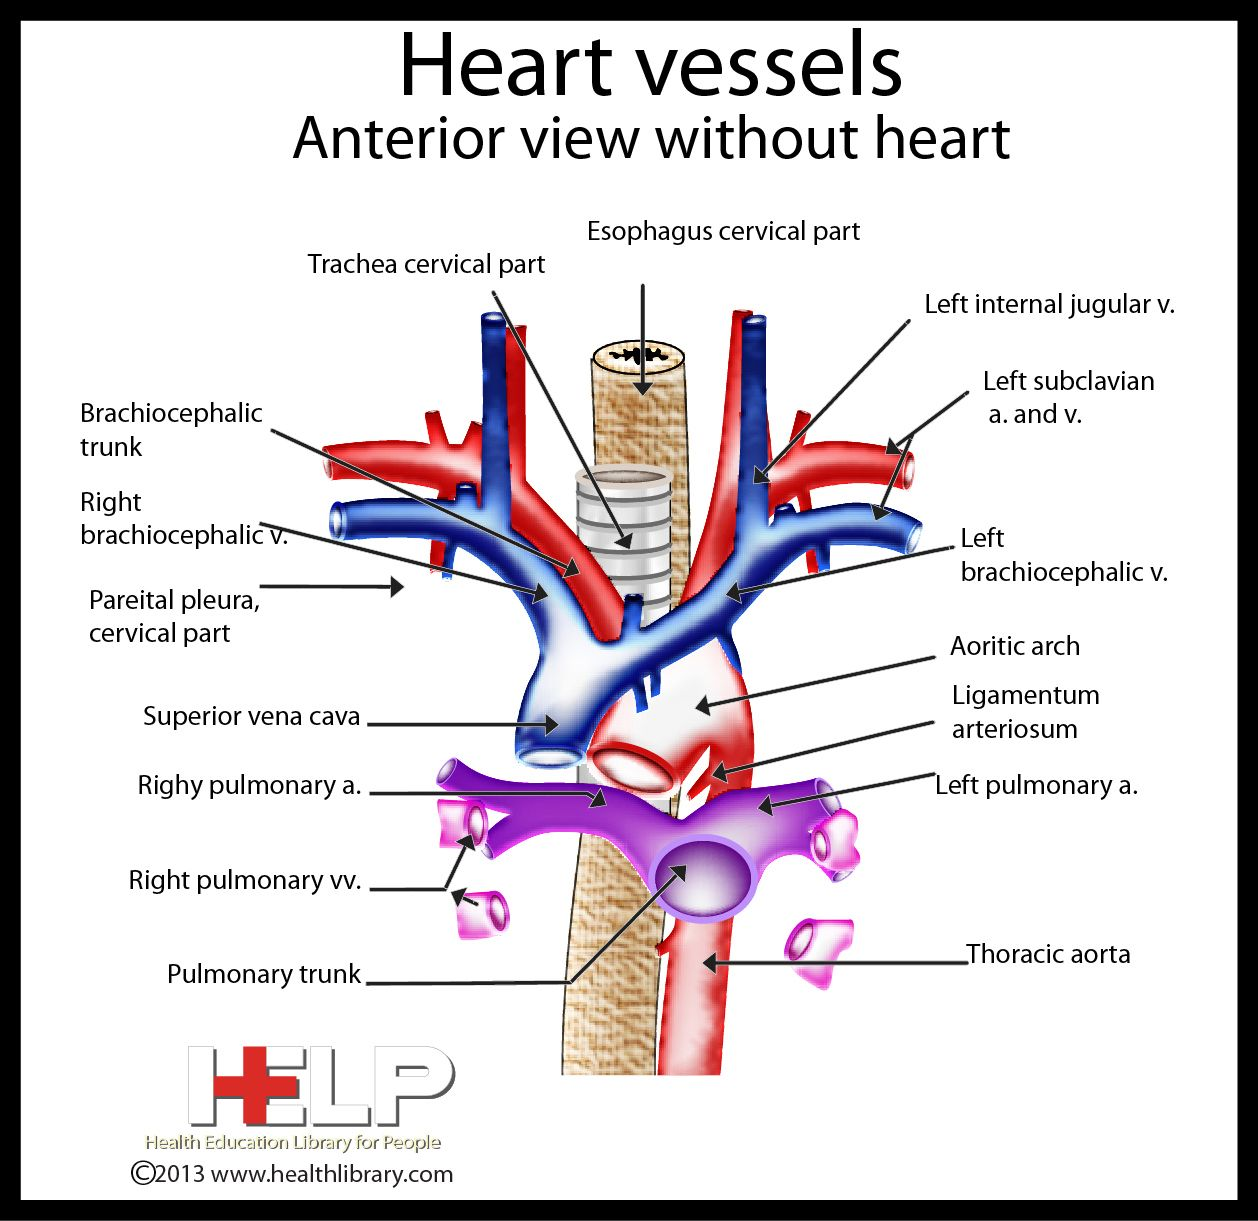 Vessels of the heart anatomy